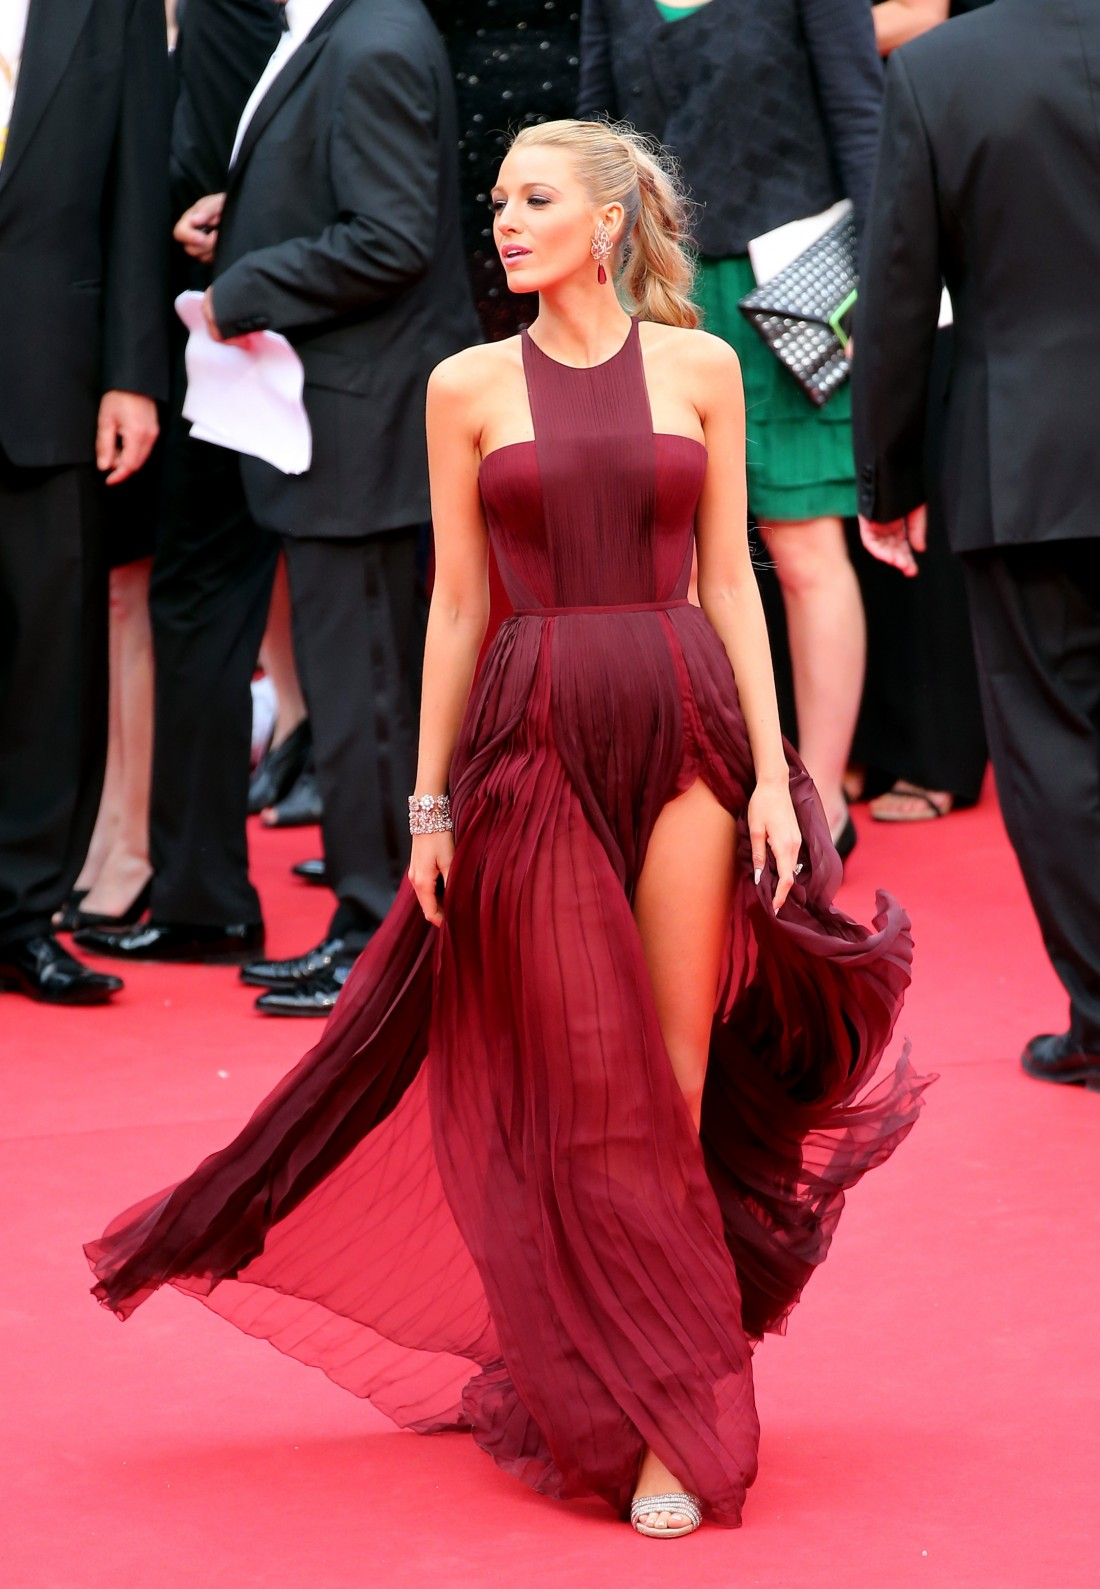 67th Cannes Film Festival. Cannes